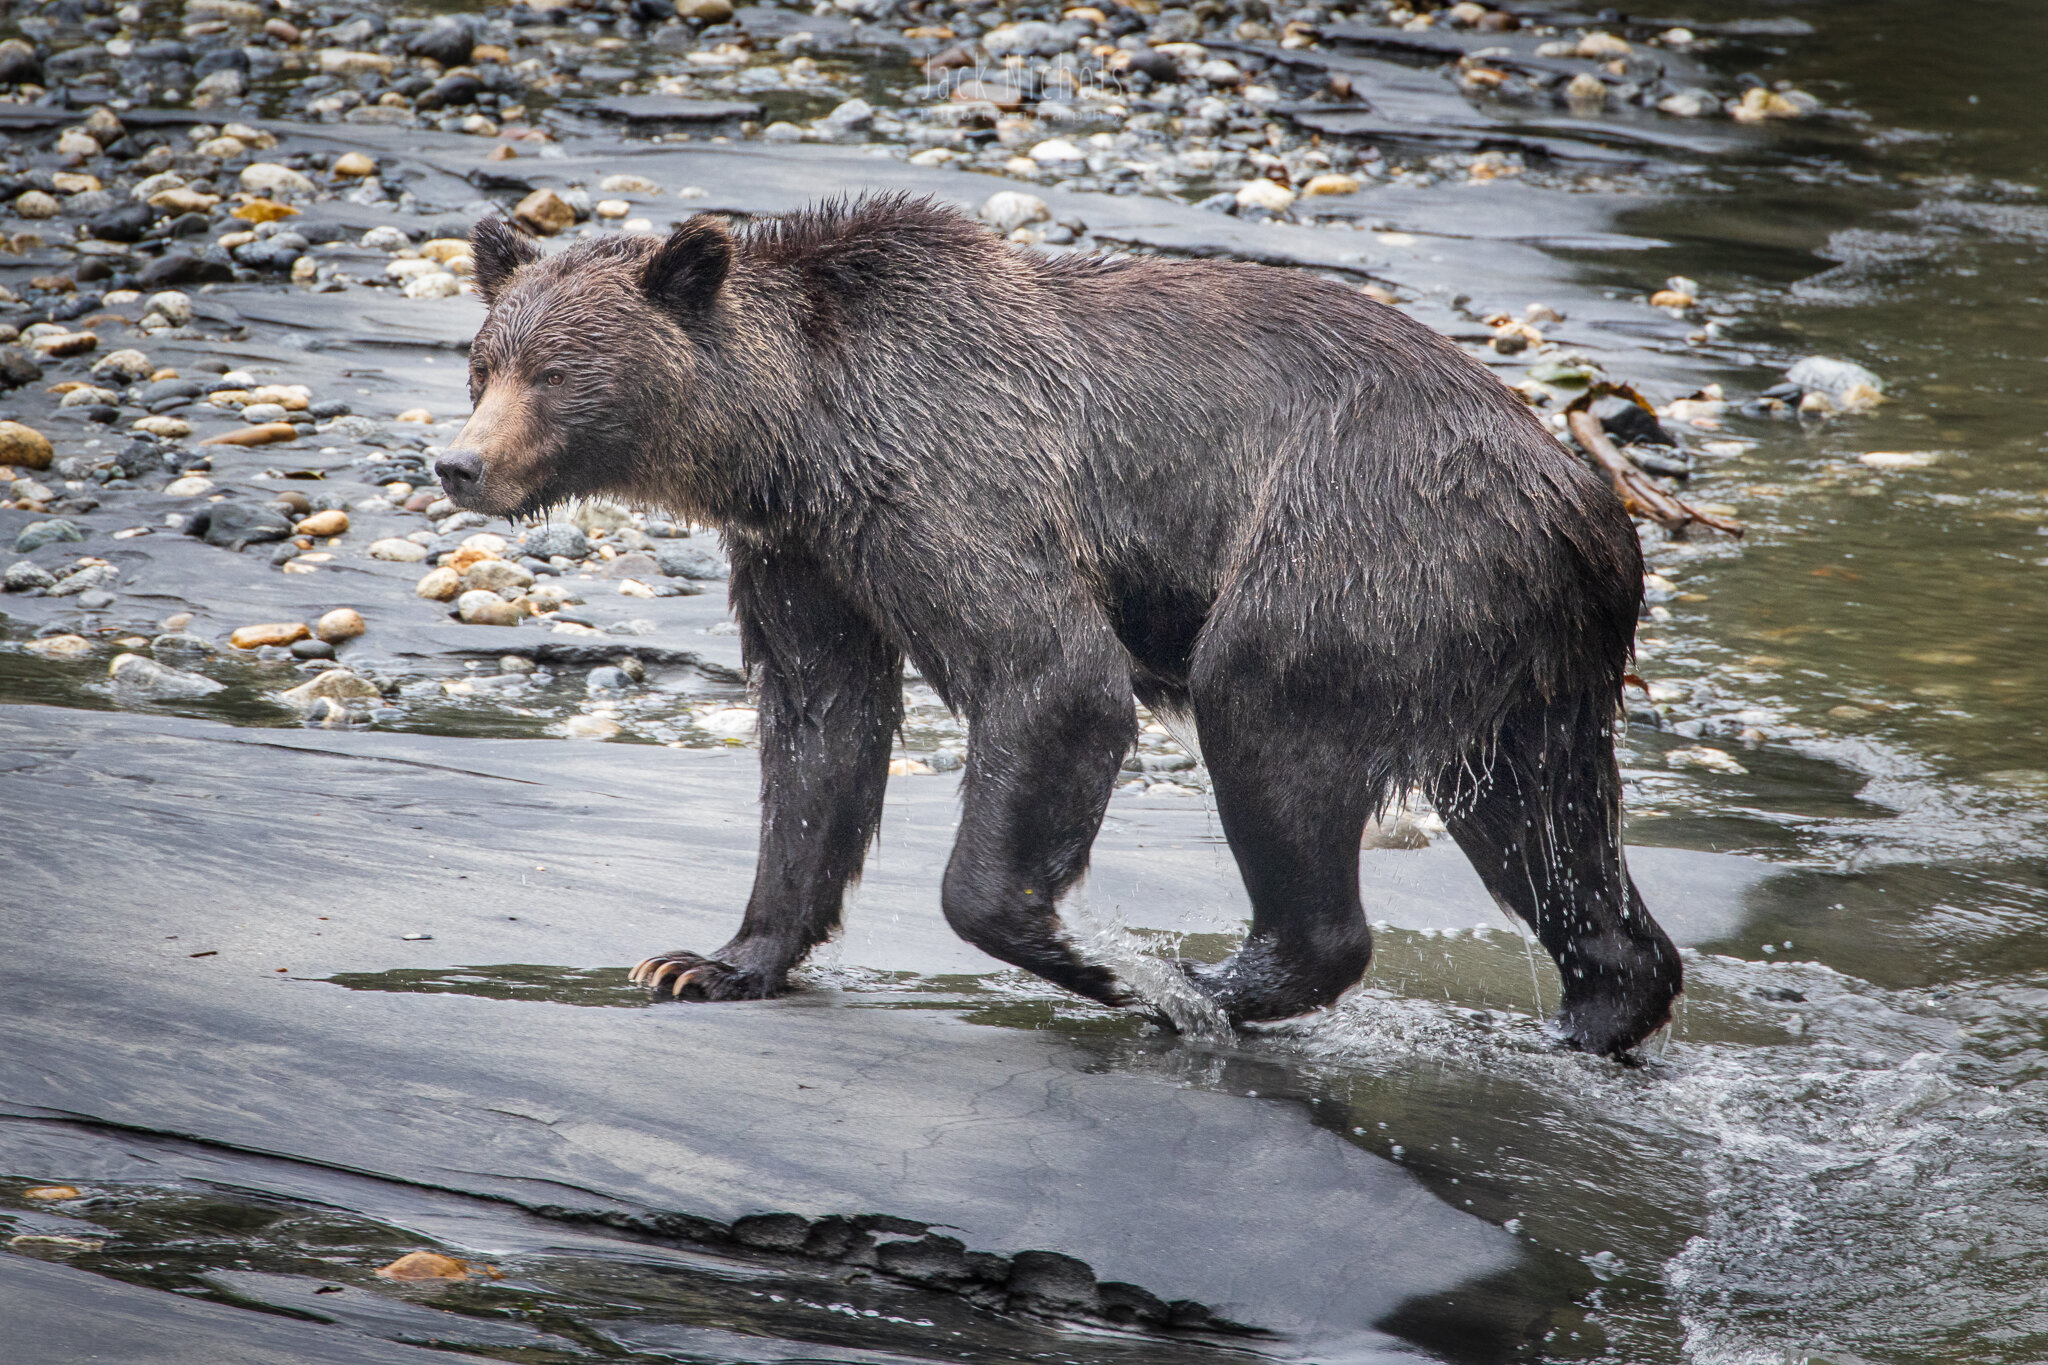 Campbell River, Toba Inlet - Grizzly bear walking on beach after exiting water-20190908.jpg